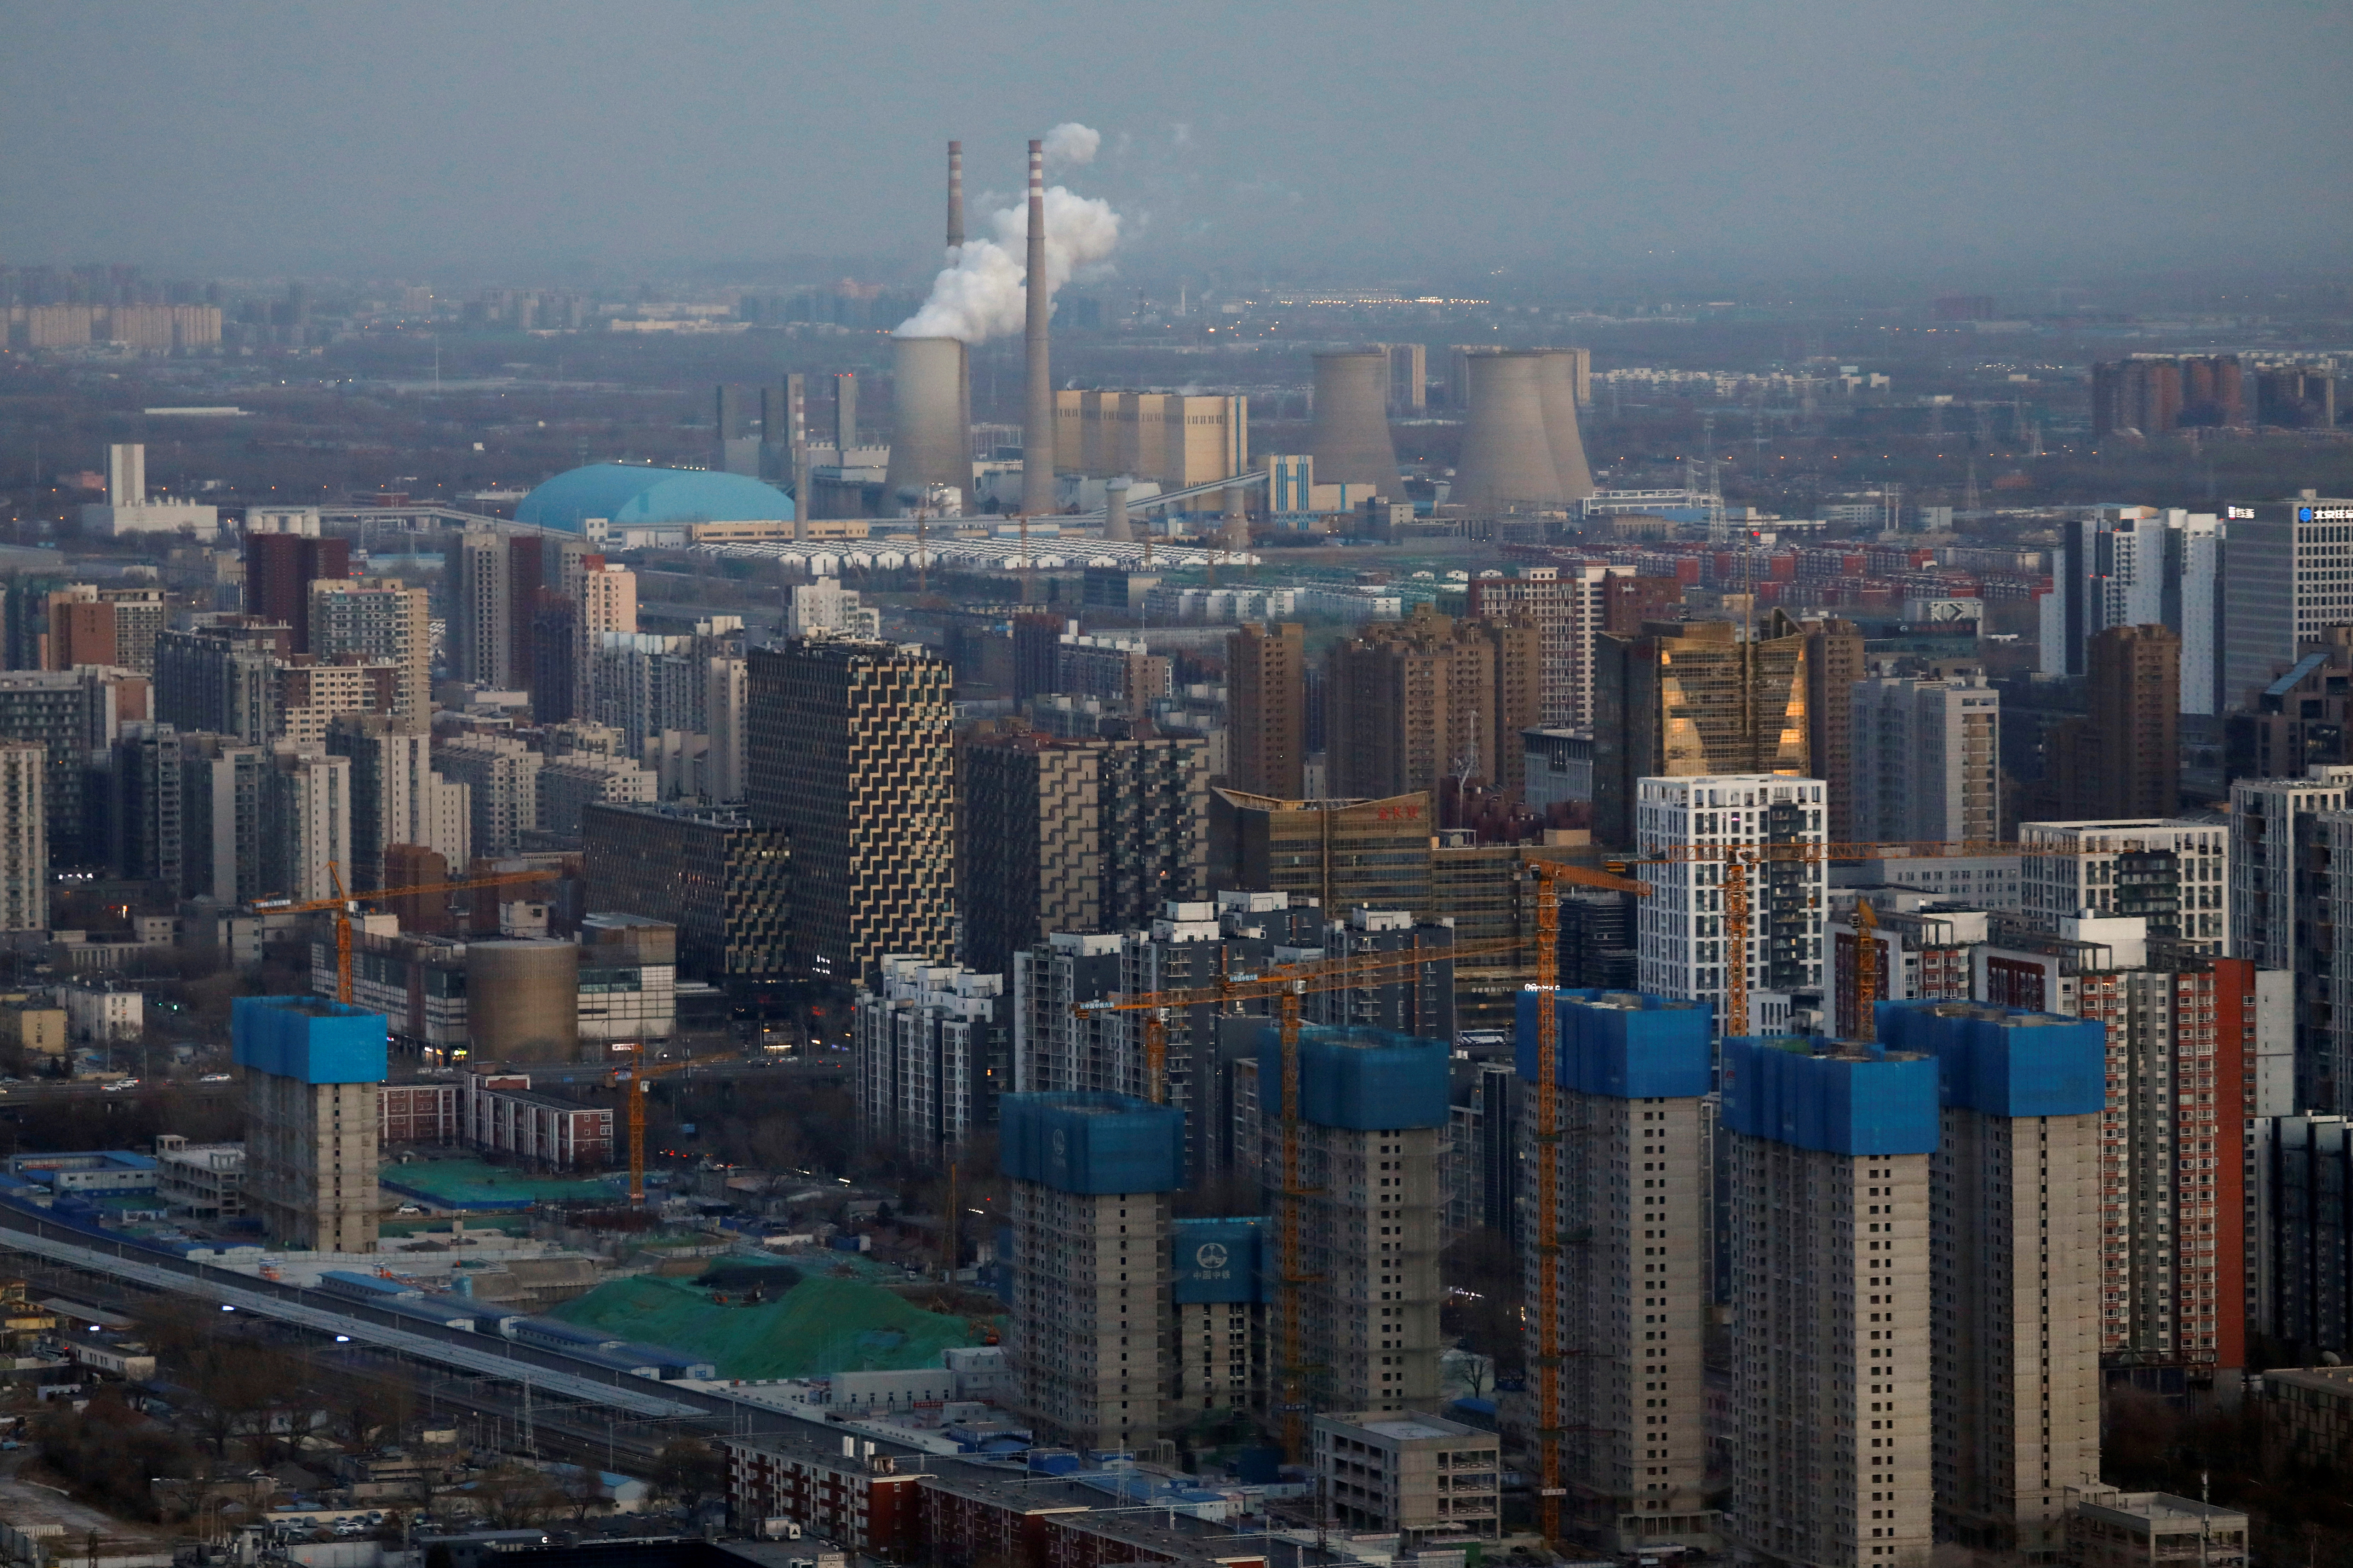 Residential buildings under construction and a power station are seen near the central business district (CBD) in Beijing, China, January 15, 2021. REUTERS/Tingshu Wang/File Photo